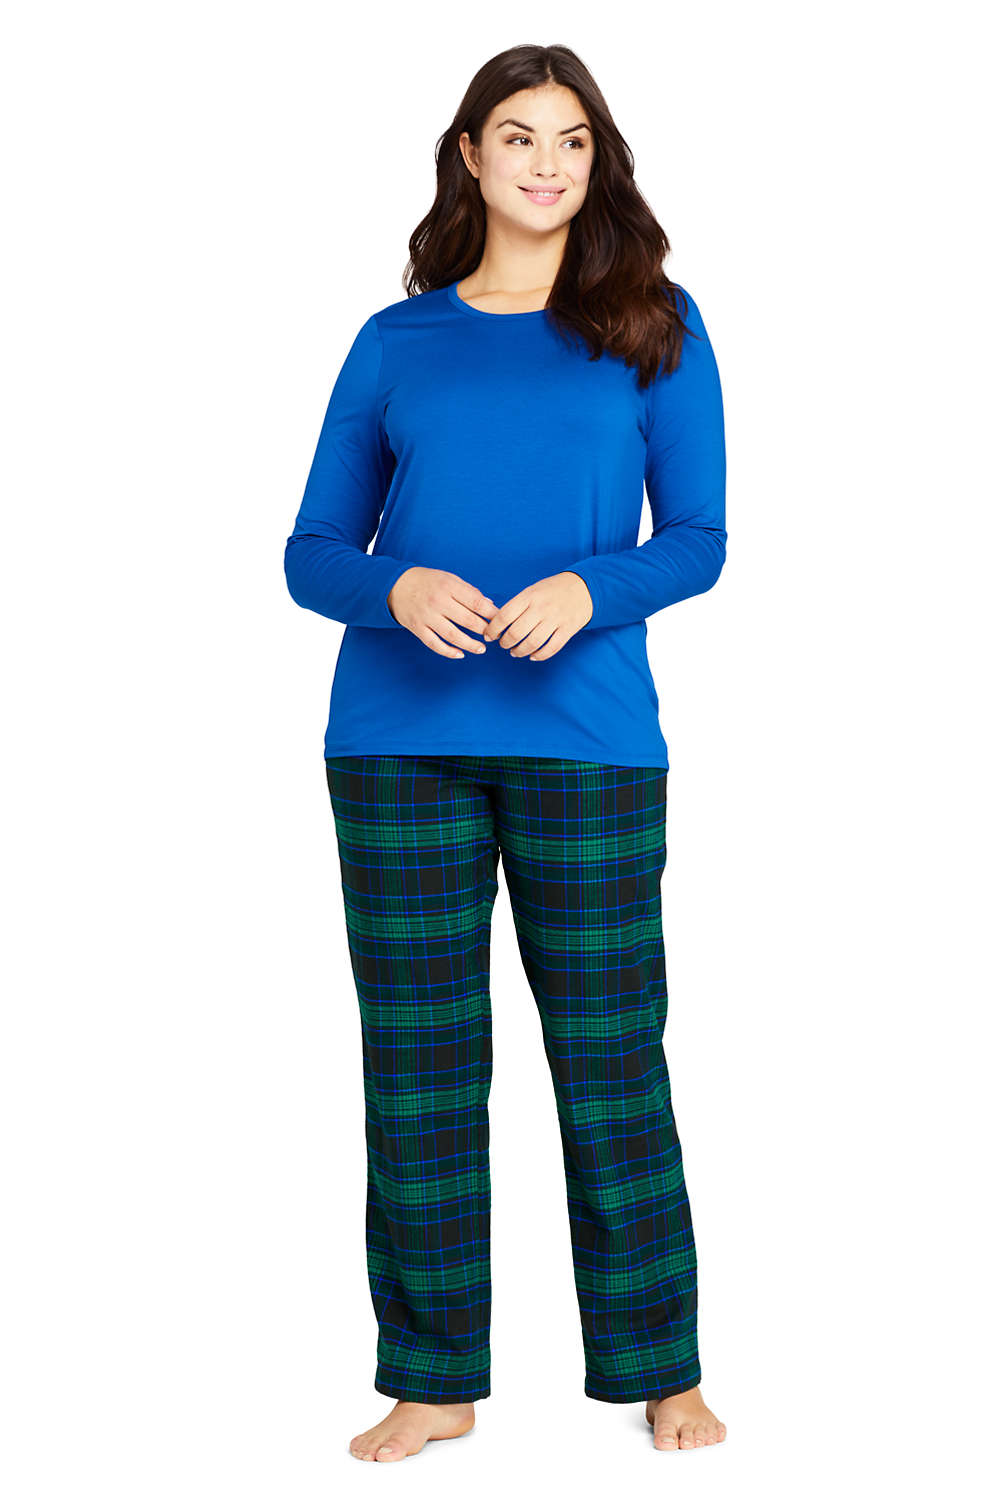 aesthetic appearance uk cheap sale best deals on Women's Plus Size Knit Flannel Pajama Set